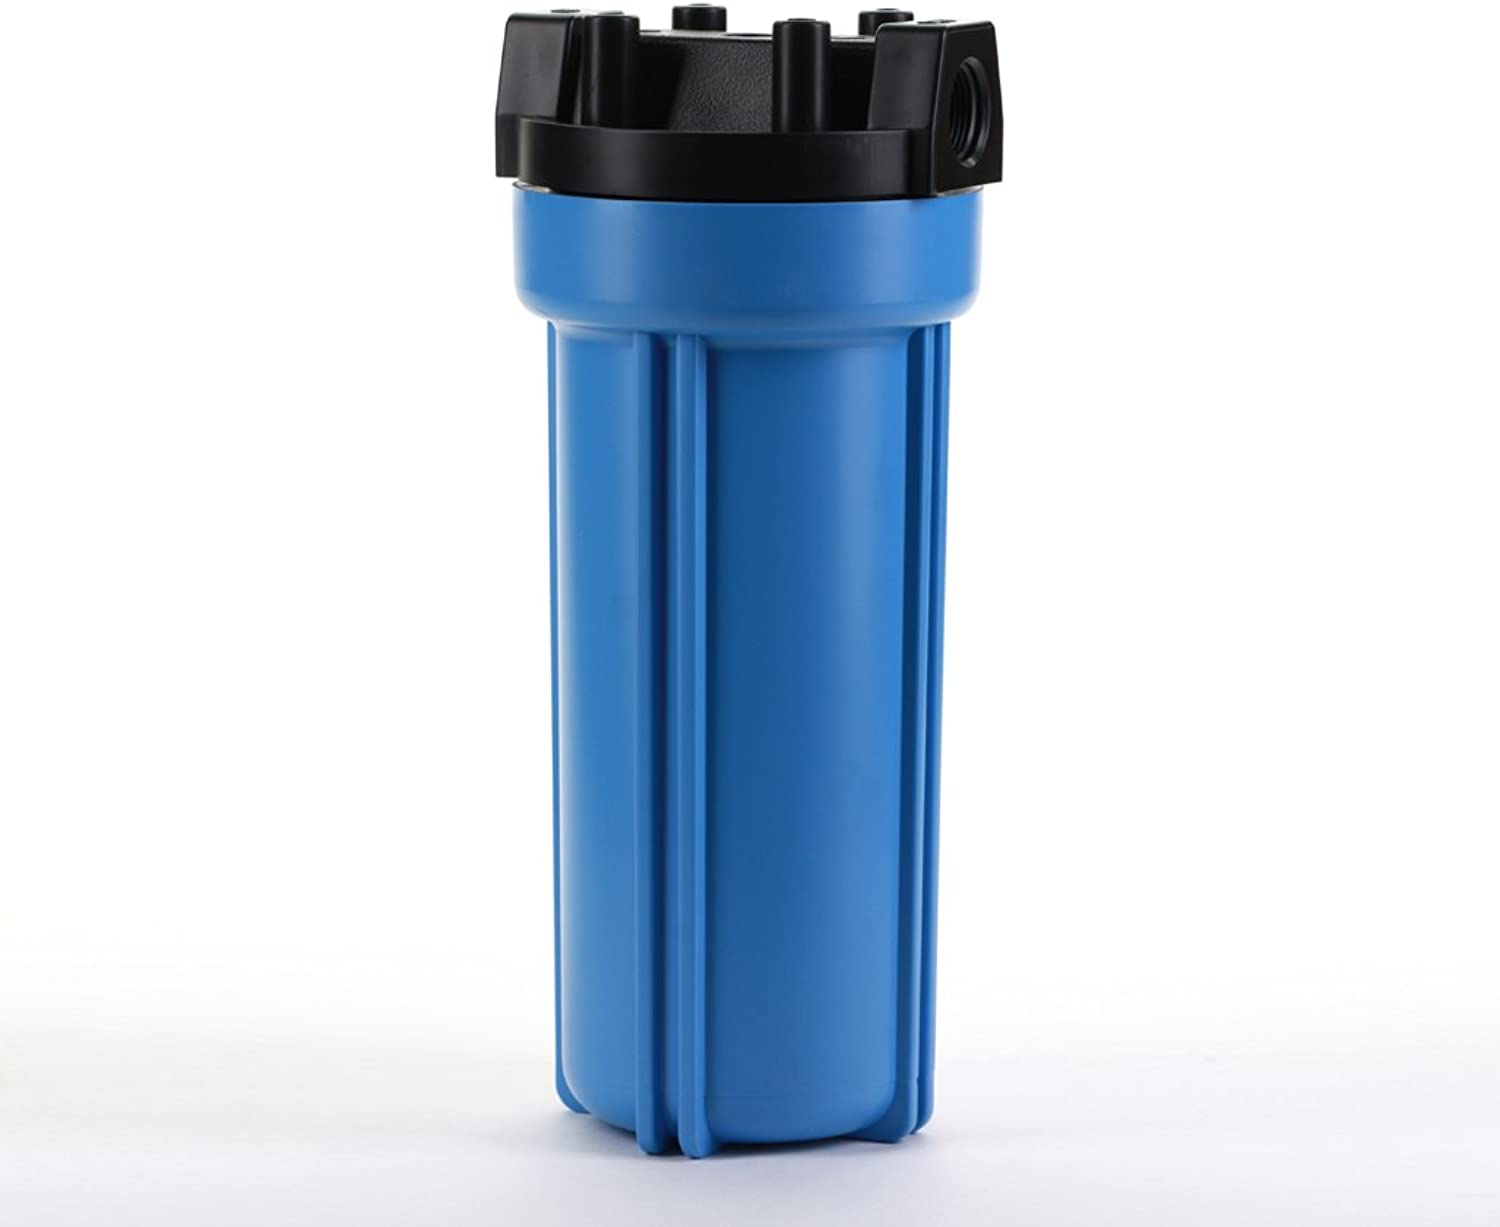 Hydronix HX-HF5-10BLBK34 Water Filter 10  Nsf Listed RO, Whole House, Hydroponics-3 4  Ports, bluee Body, bluee Black